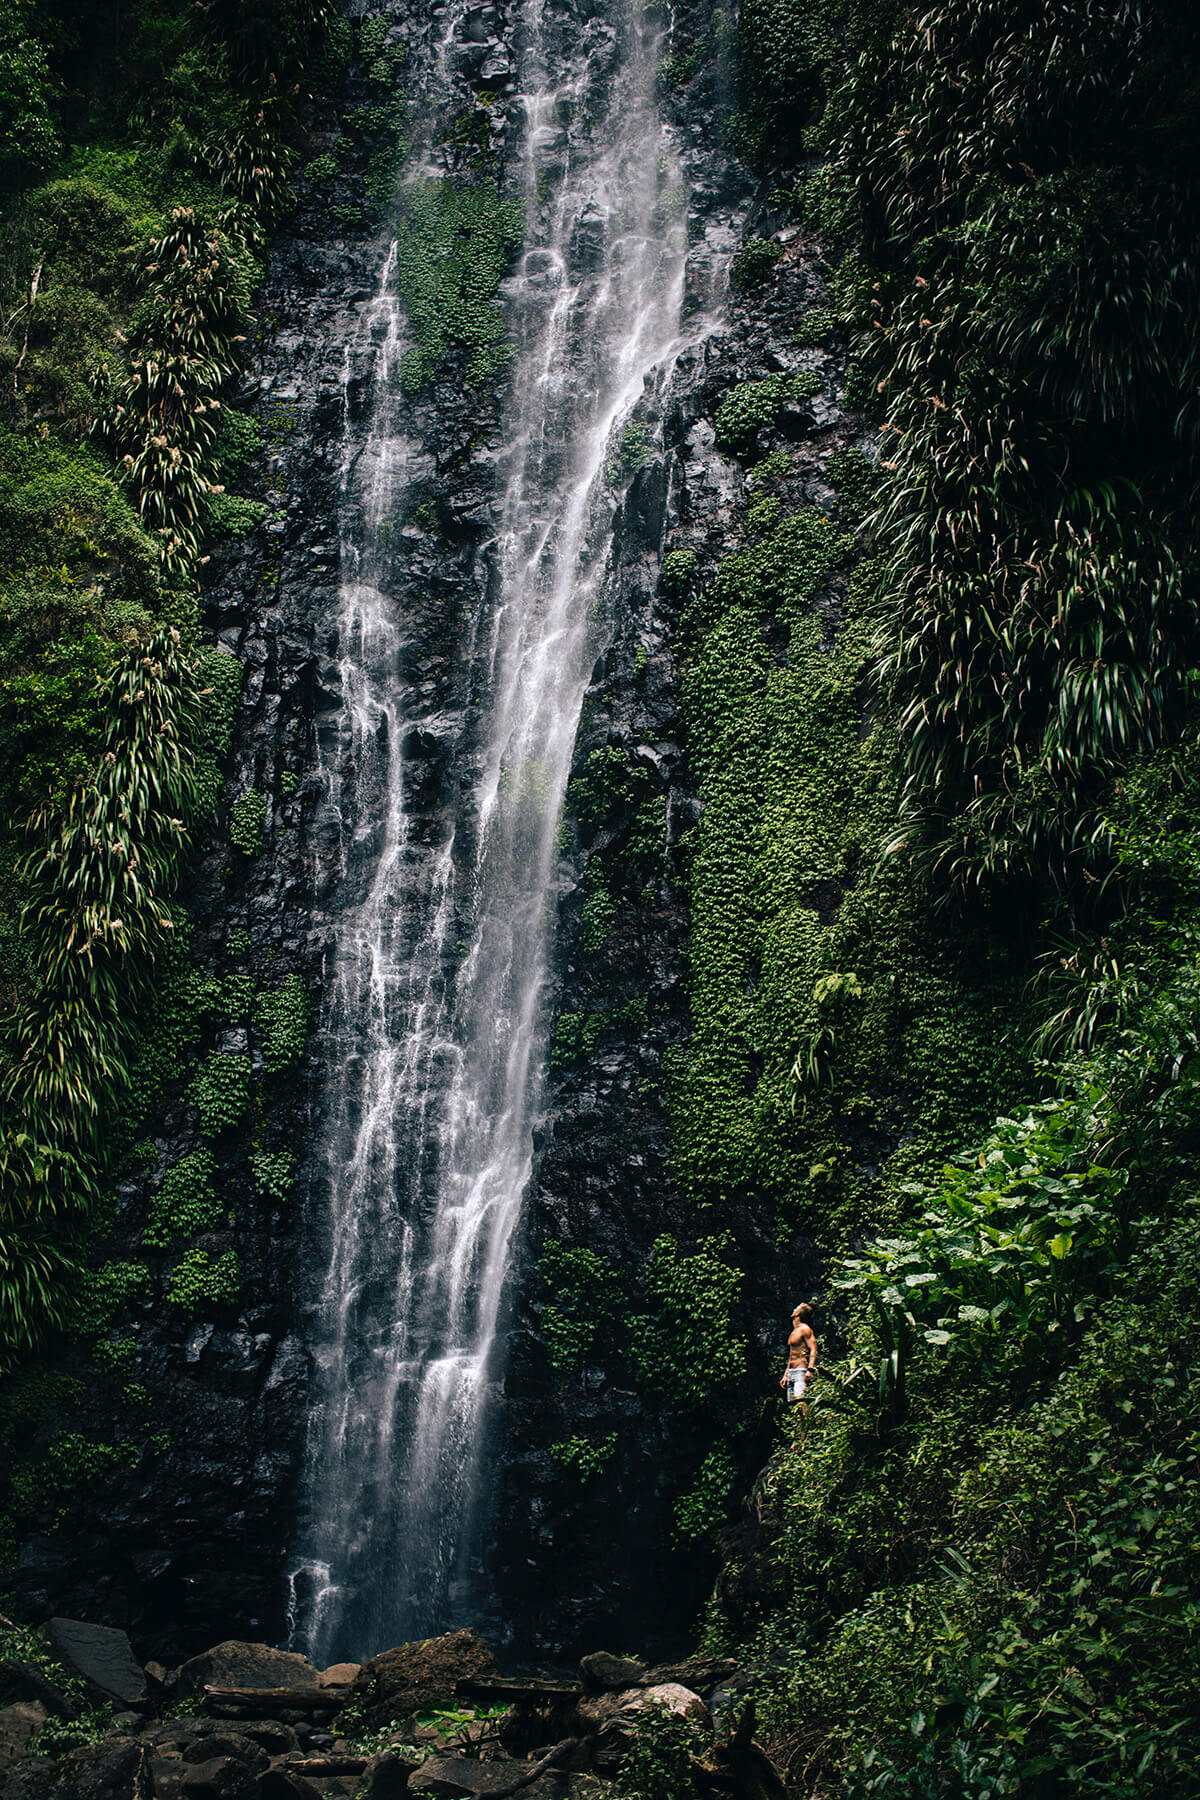 Waterfalls and rainforests in the National Parks of Queensland, Australia